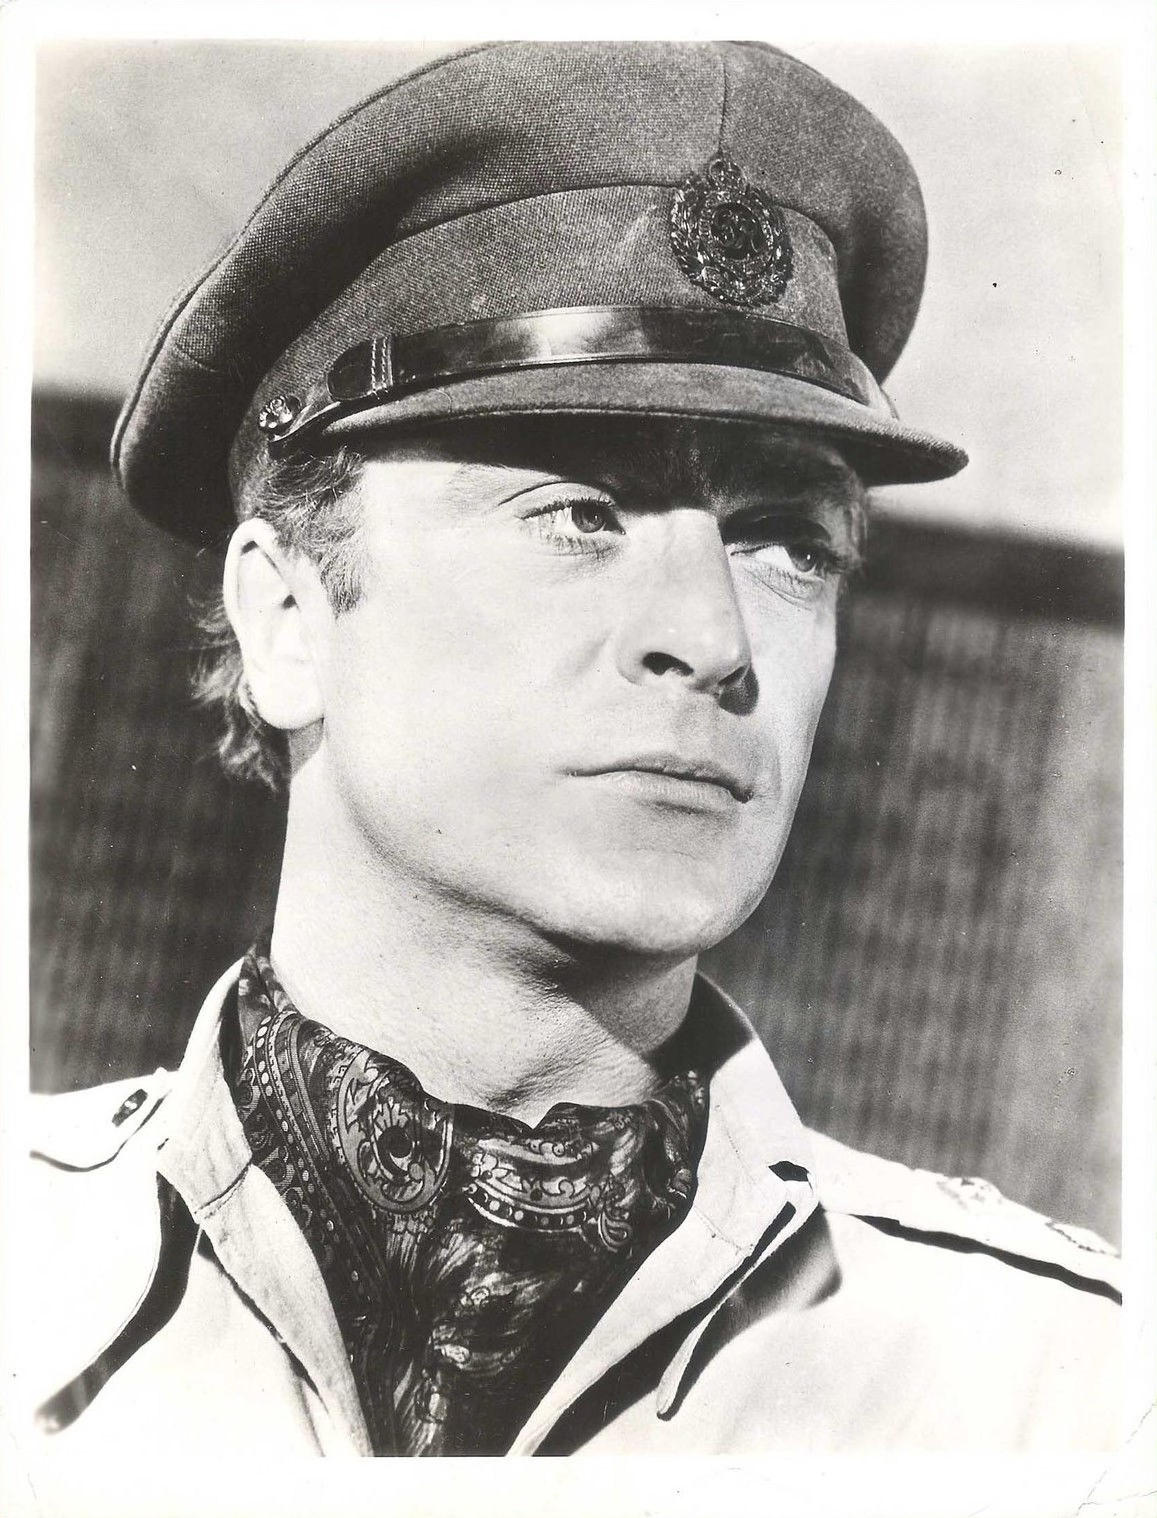 Michael Caine in Play Dirty (1969)